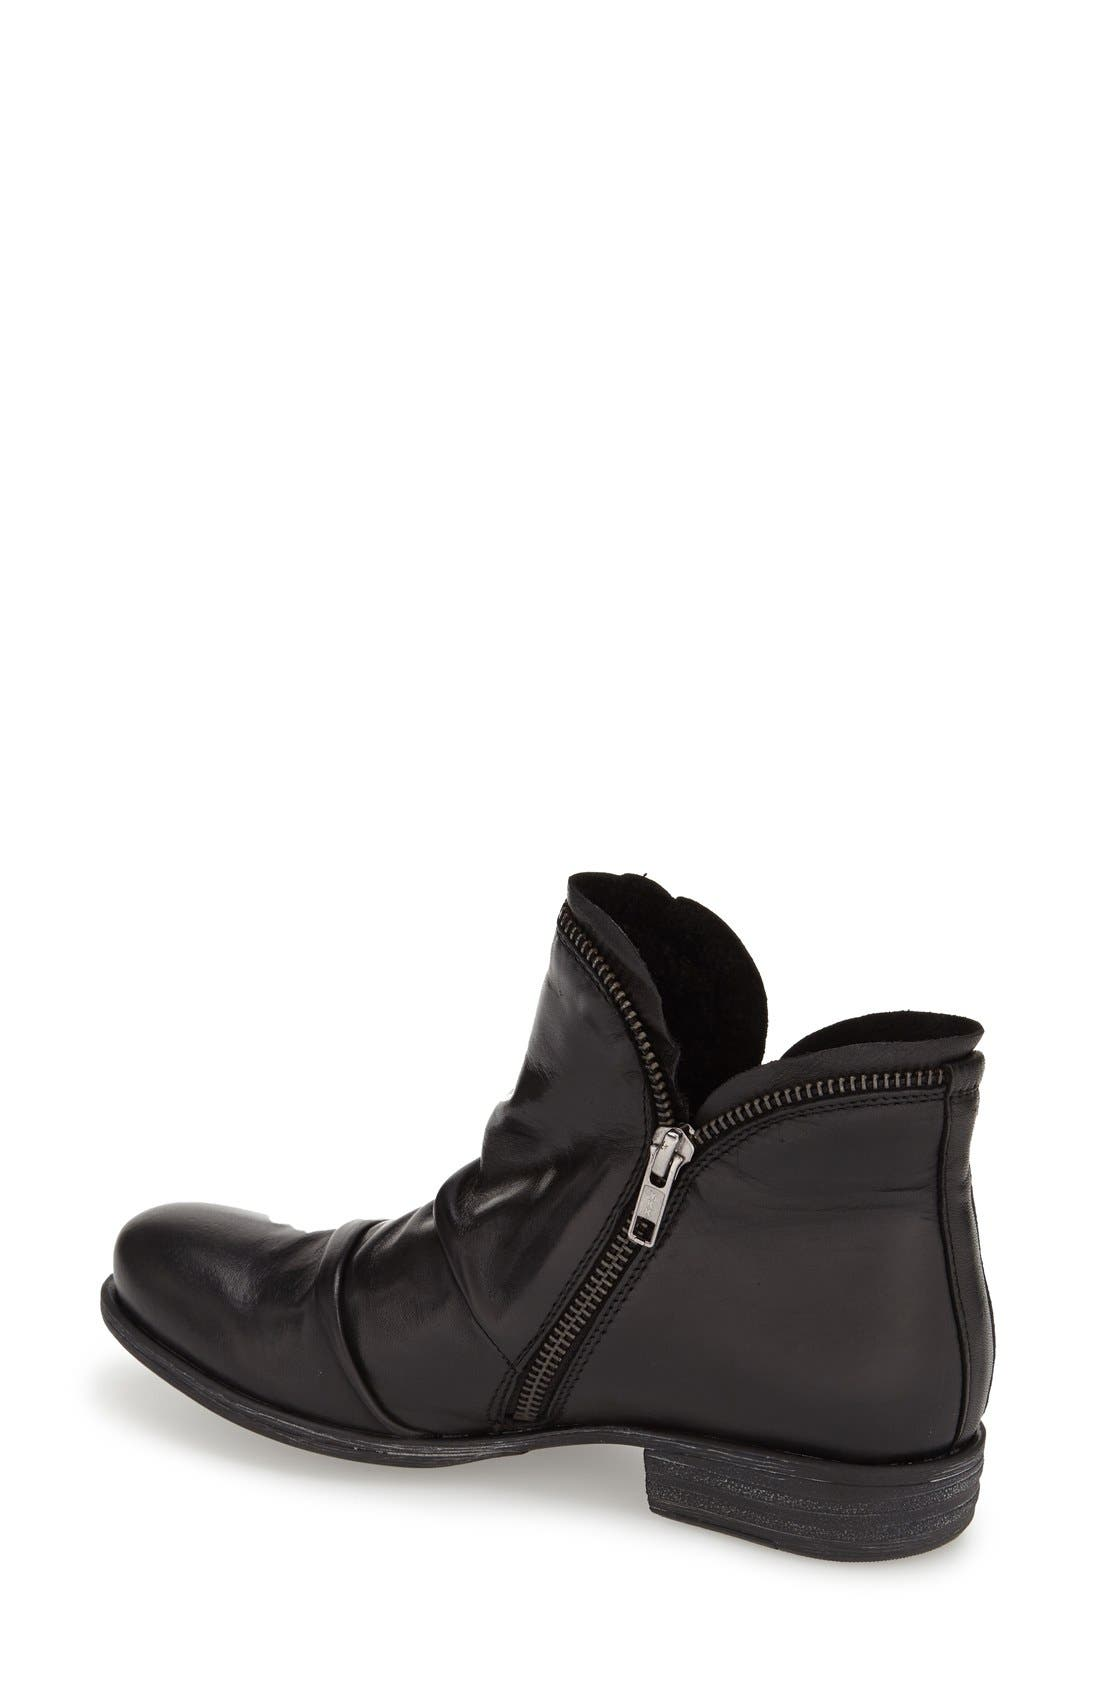 Alternate Image 2  - Miz Mooz 'Luna' Ankle Boot (Women)